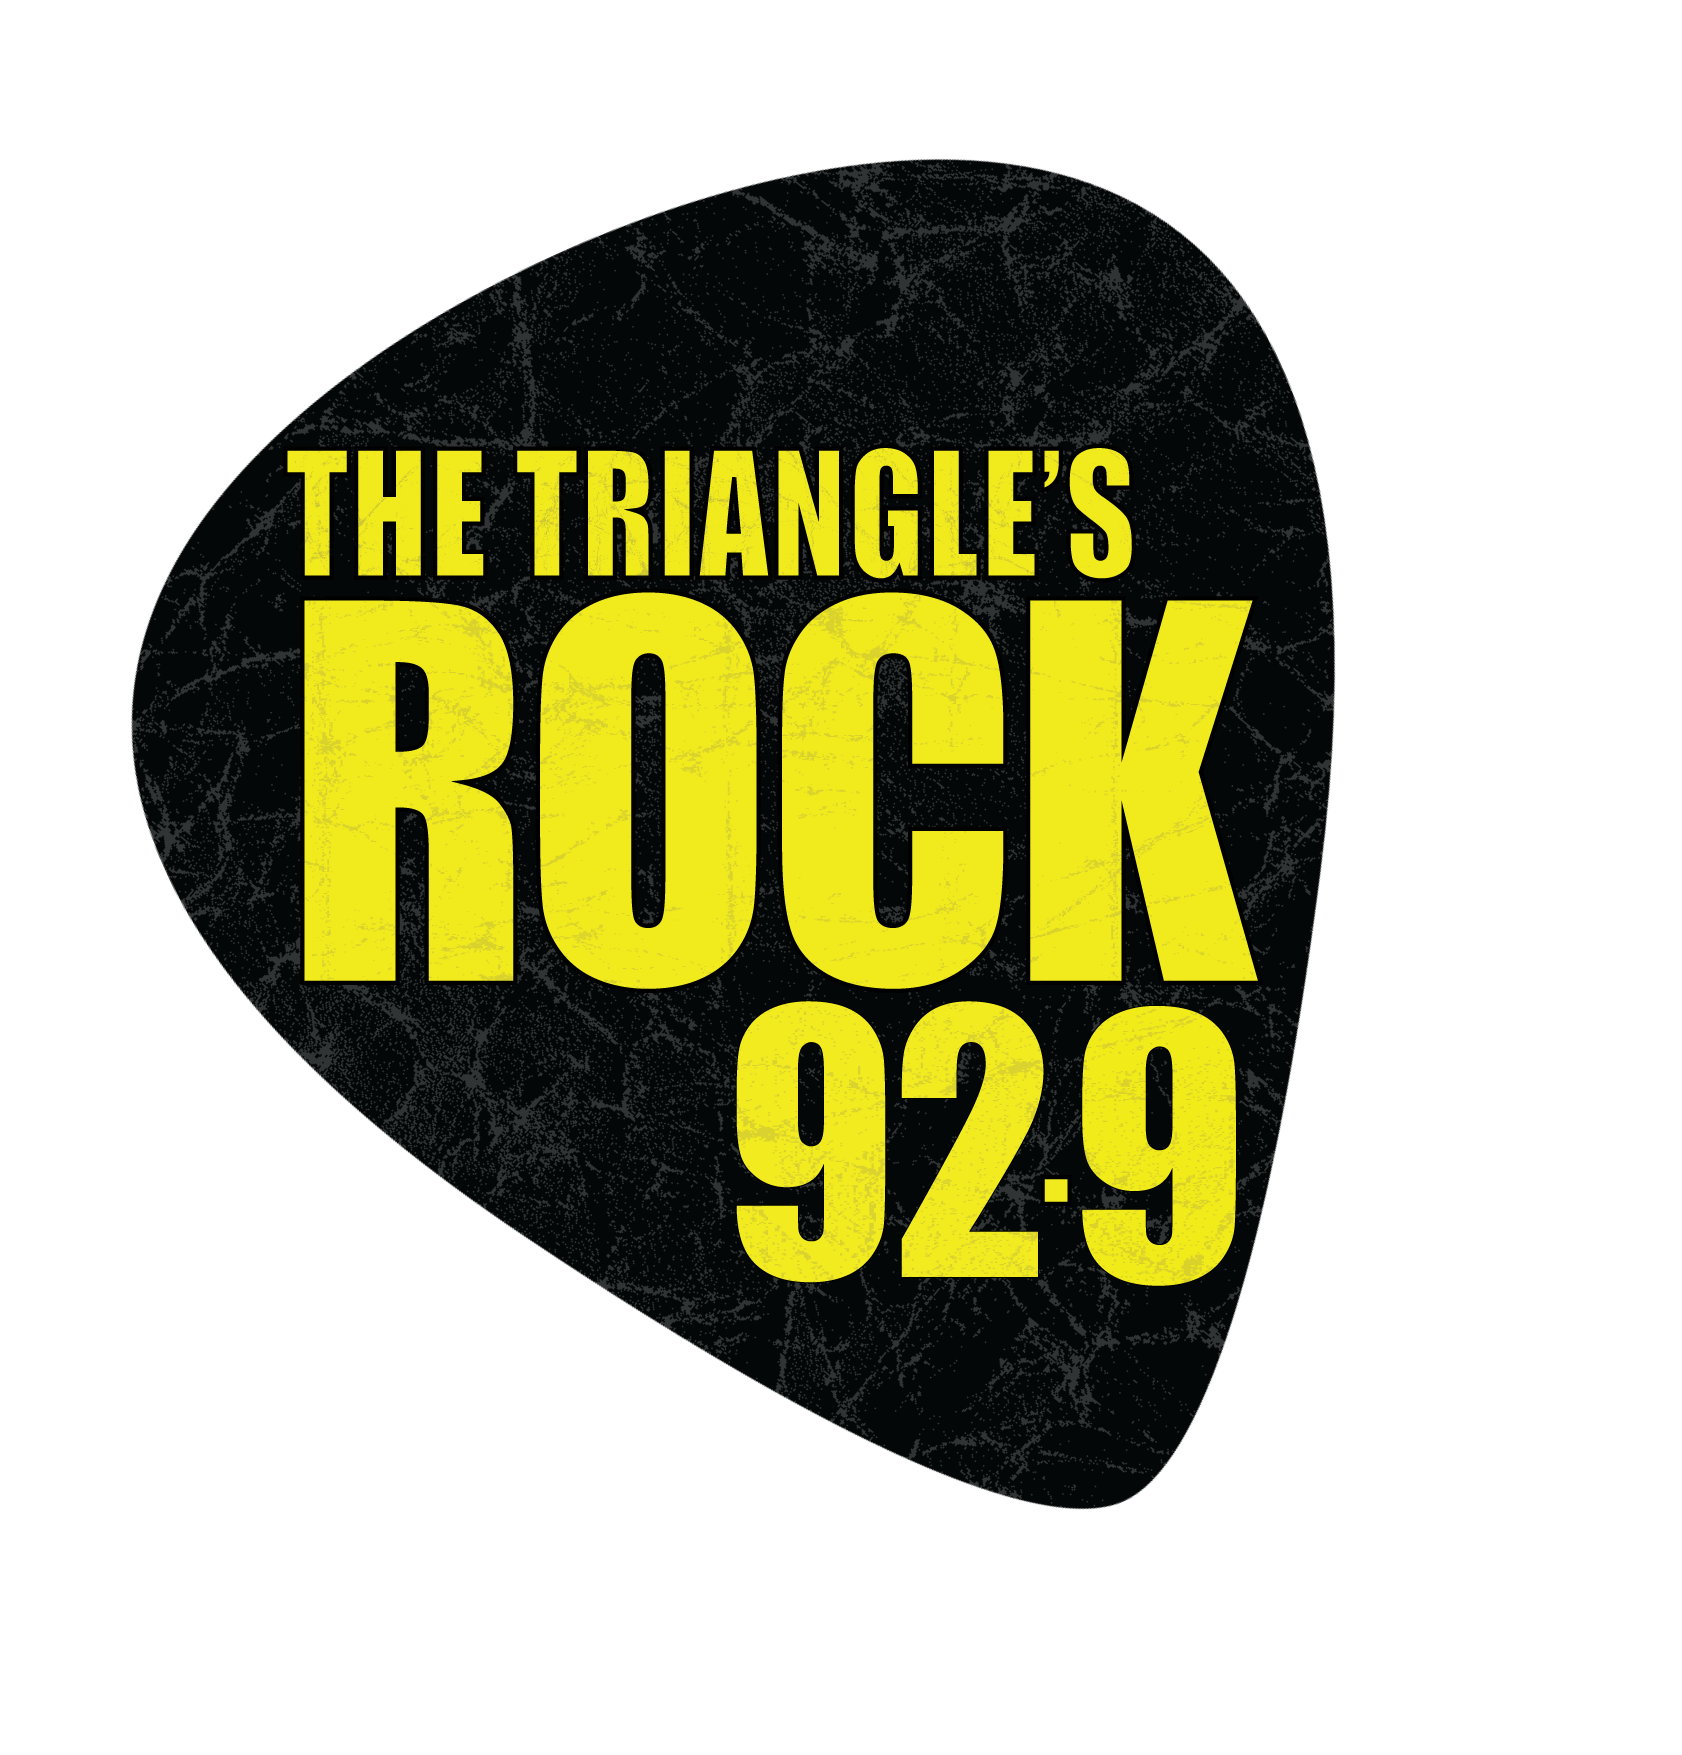 Triangle's Rock 92.9